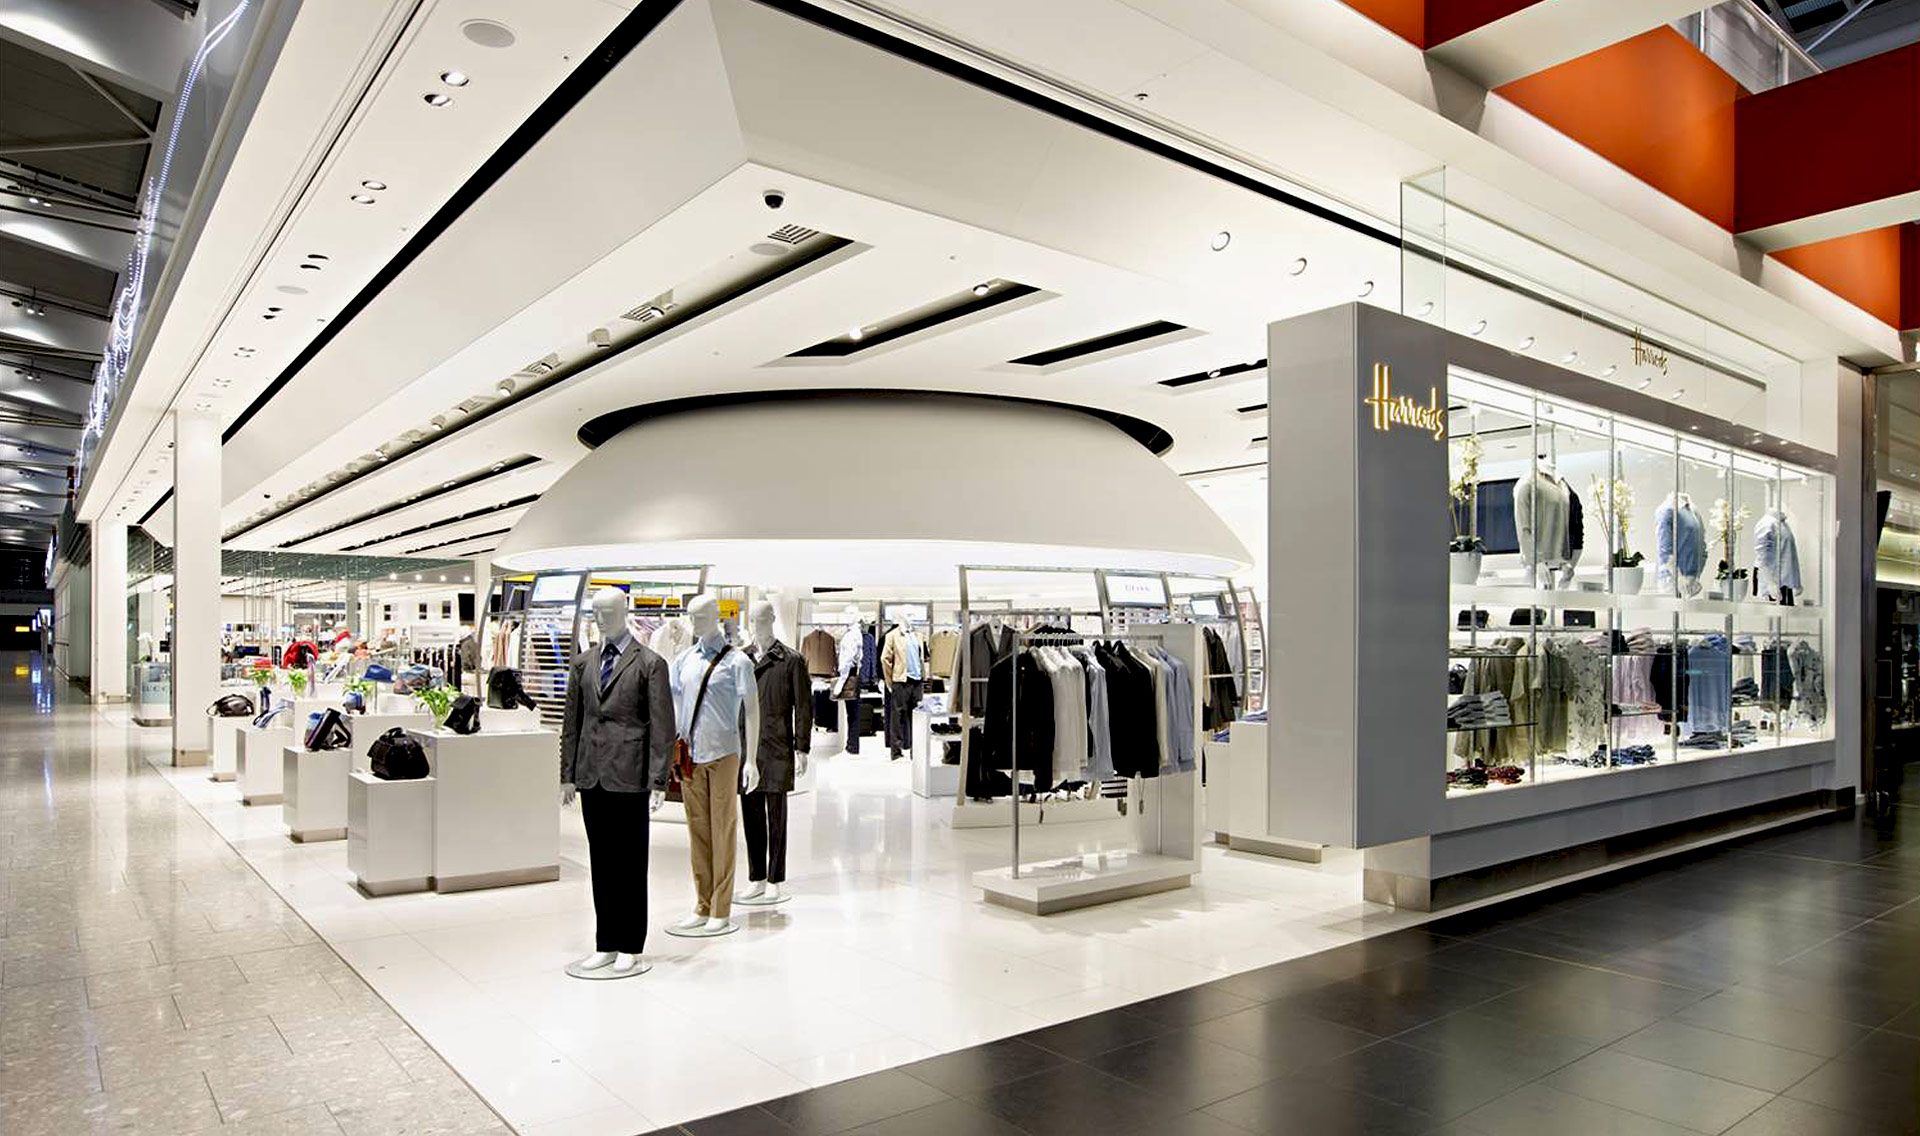 Harrods heathrow t5 london e m tecnica engineering for Retail design companies london